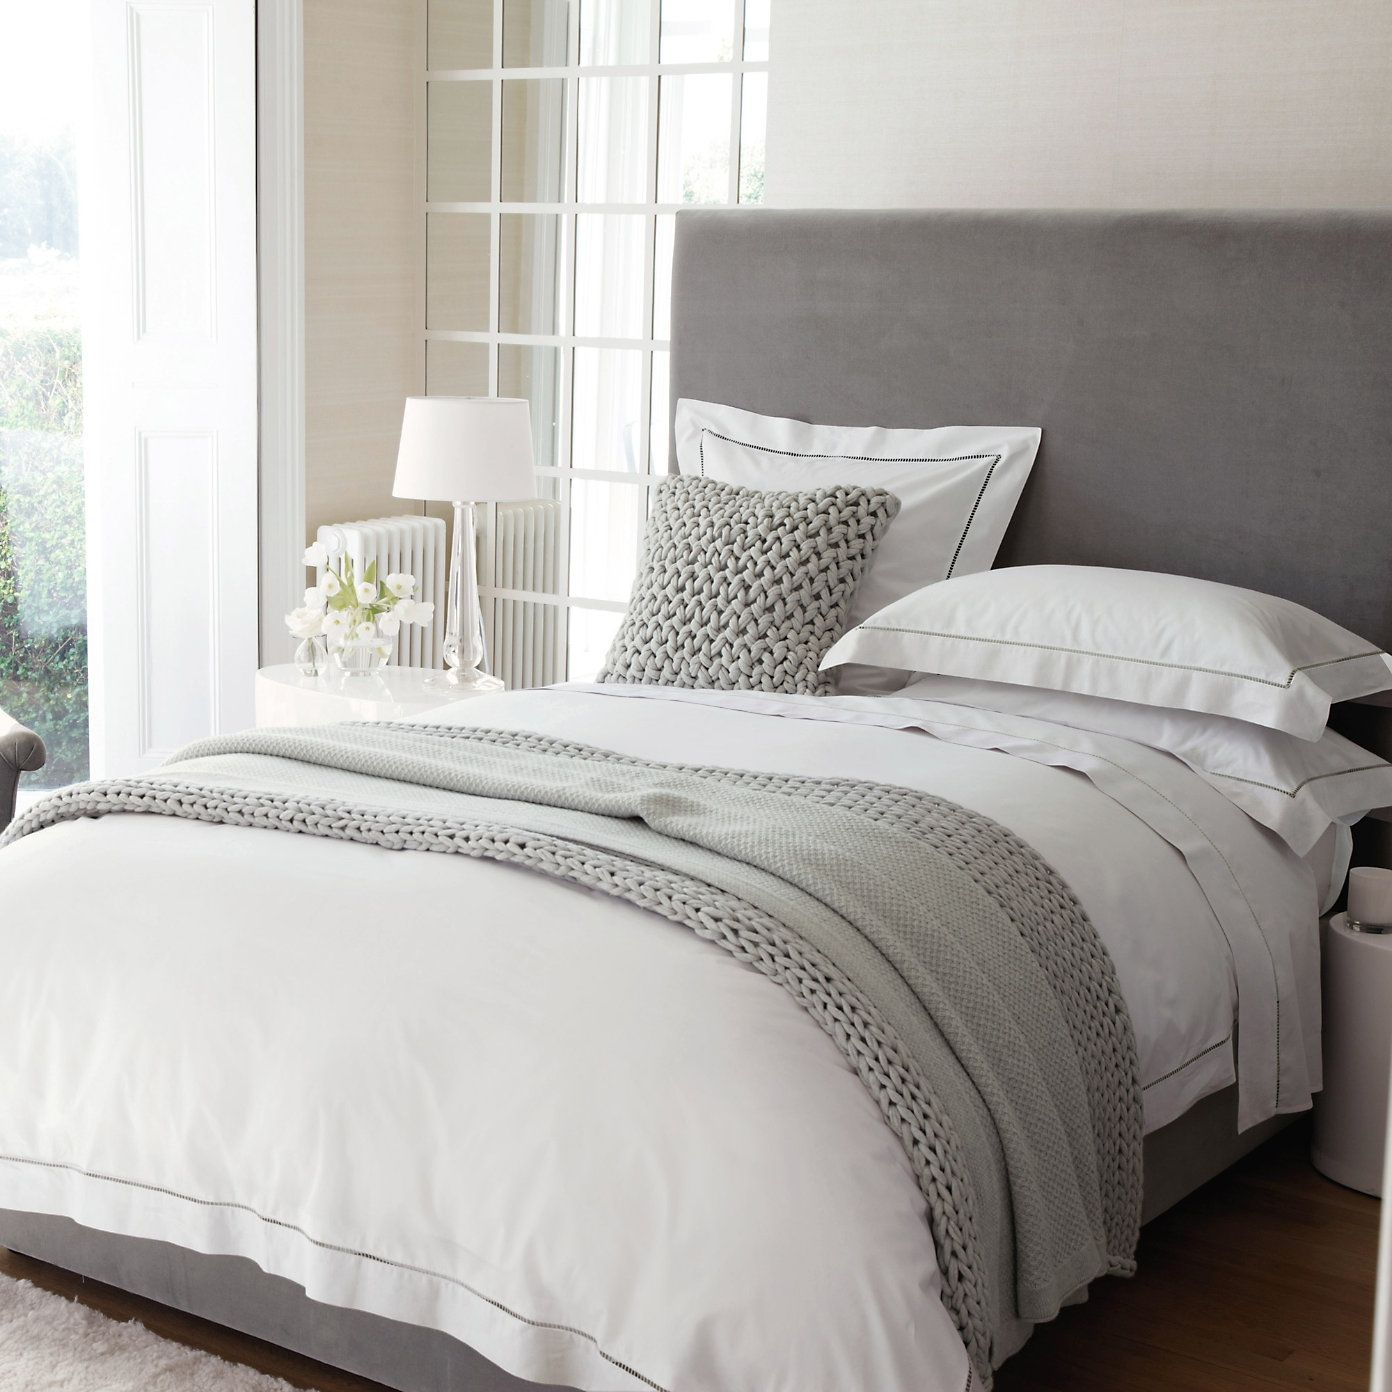 Pale Grey Bedroom I Love These Pale Grey Neutrals For Bedrooms And Like The